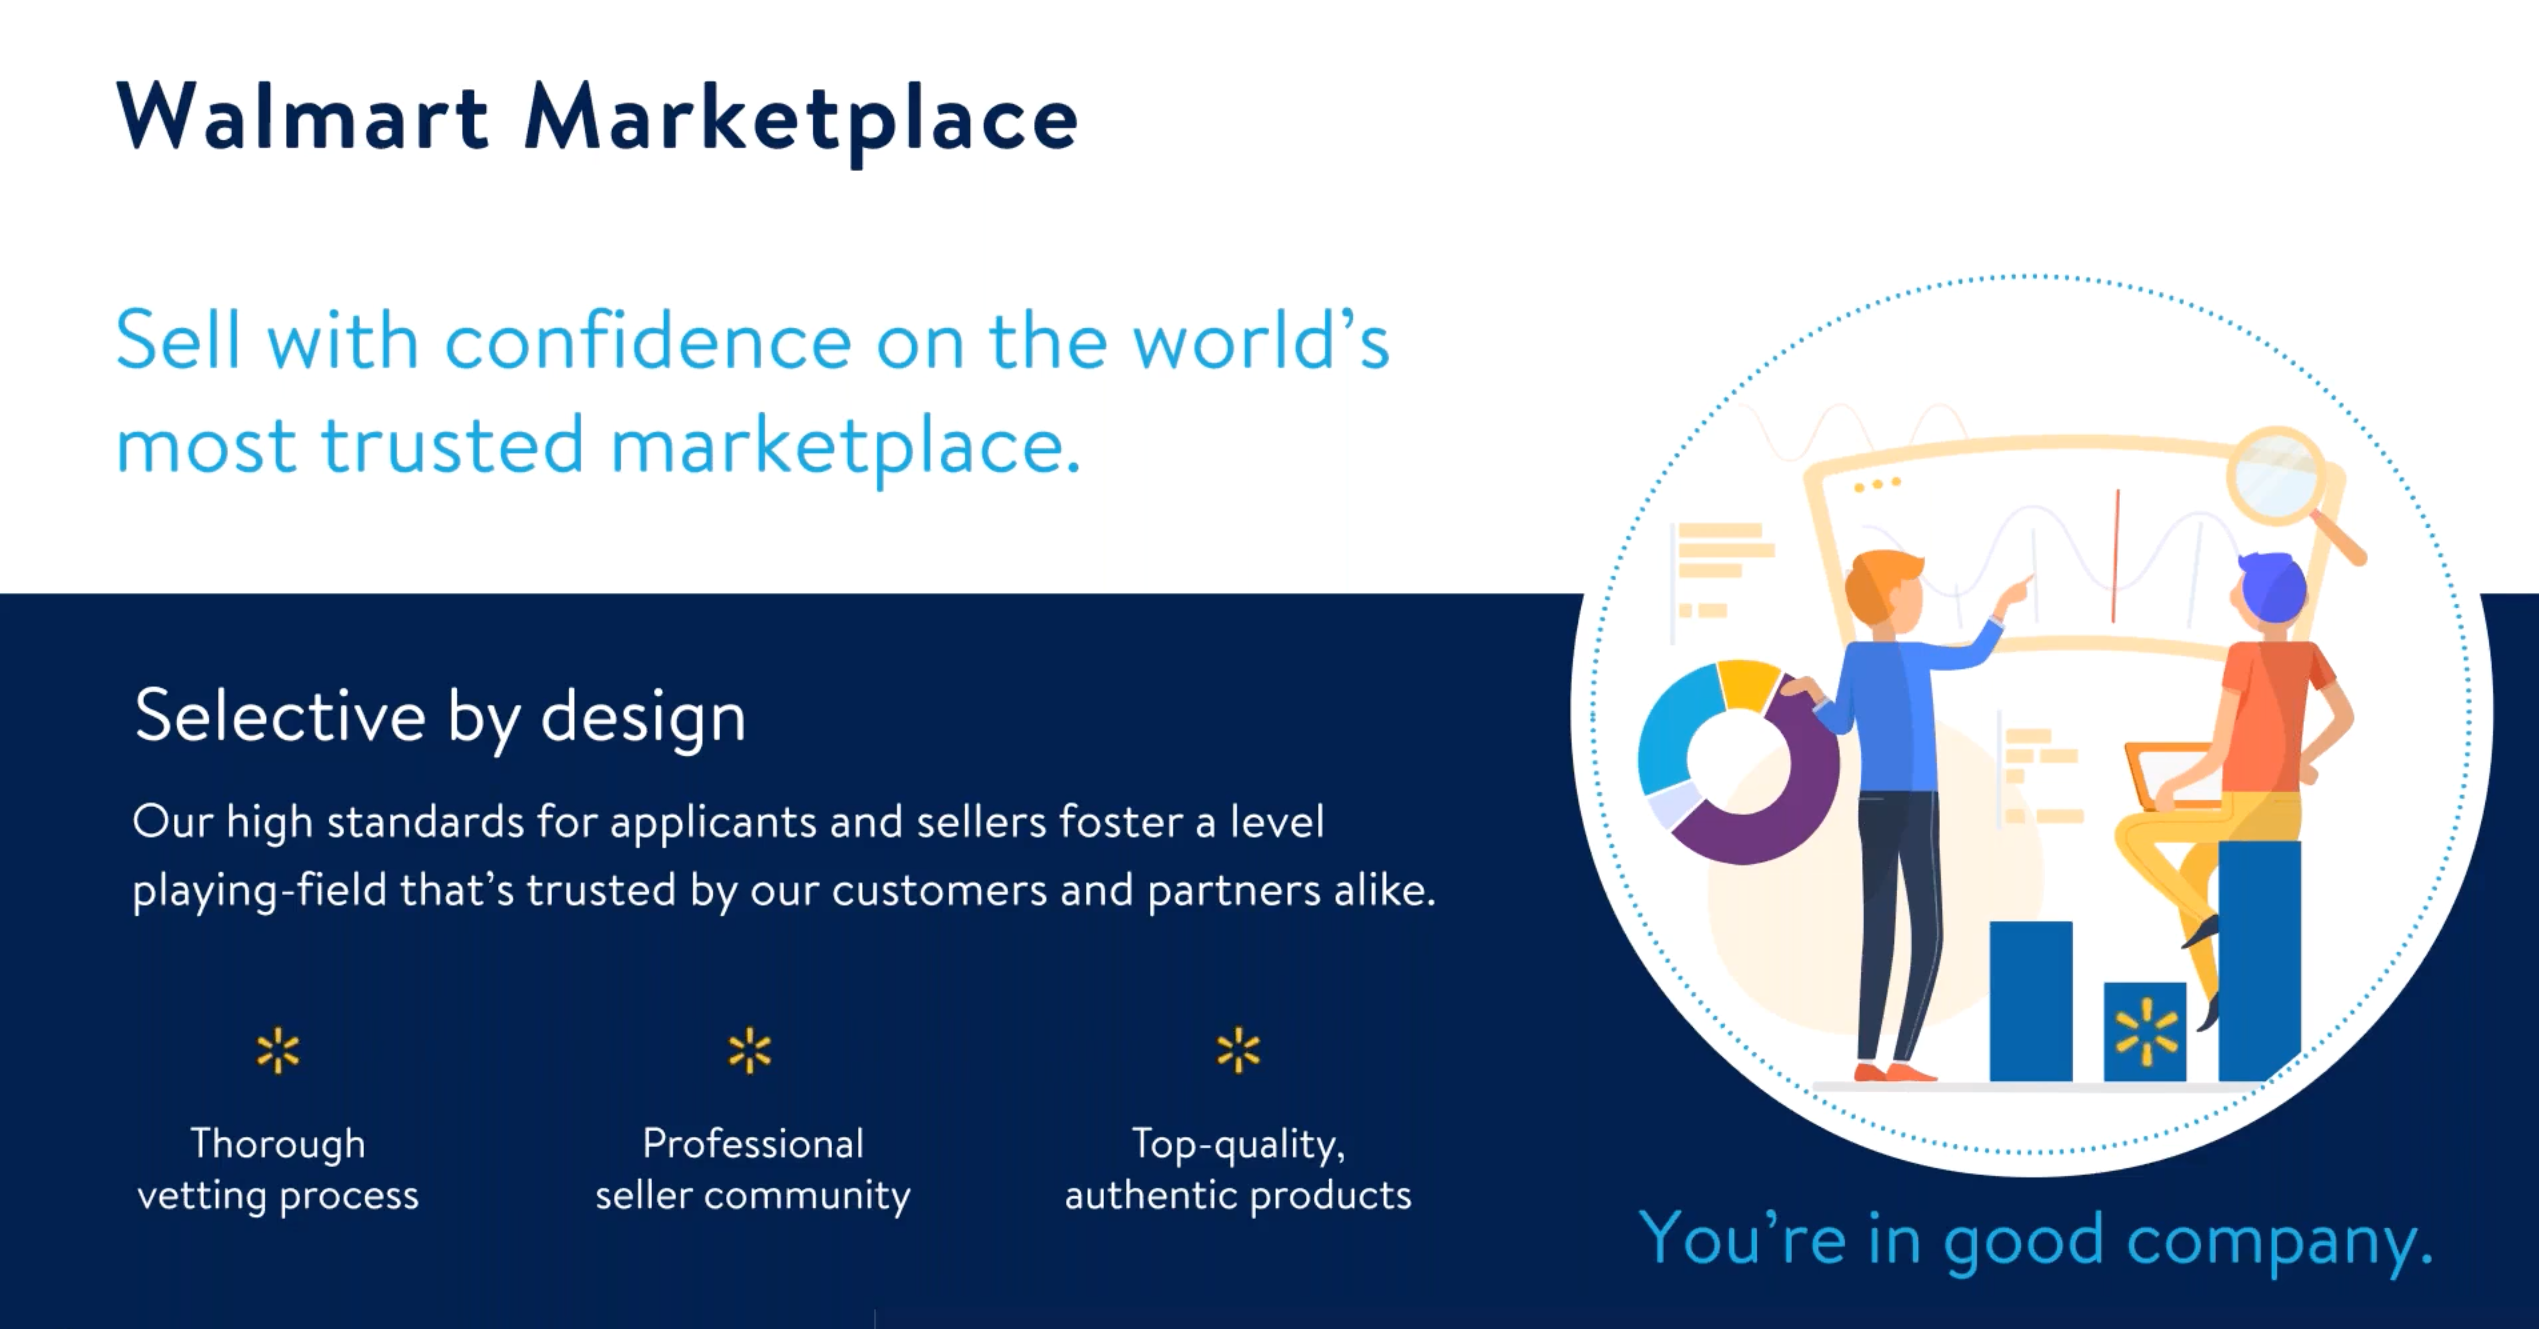 Walmart Marketplace is selective by design